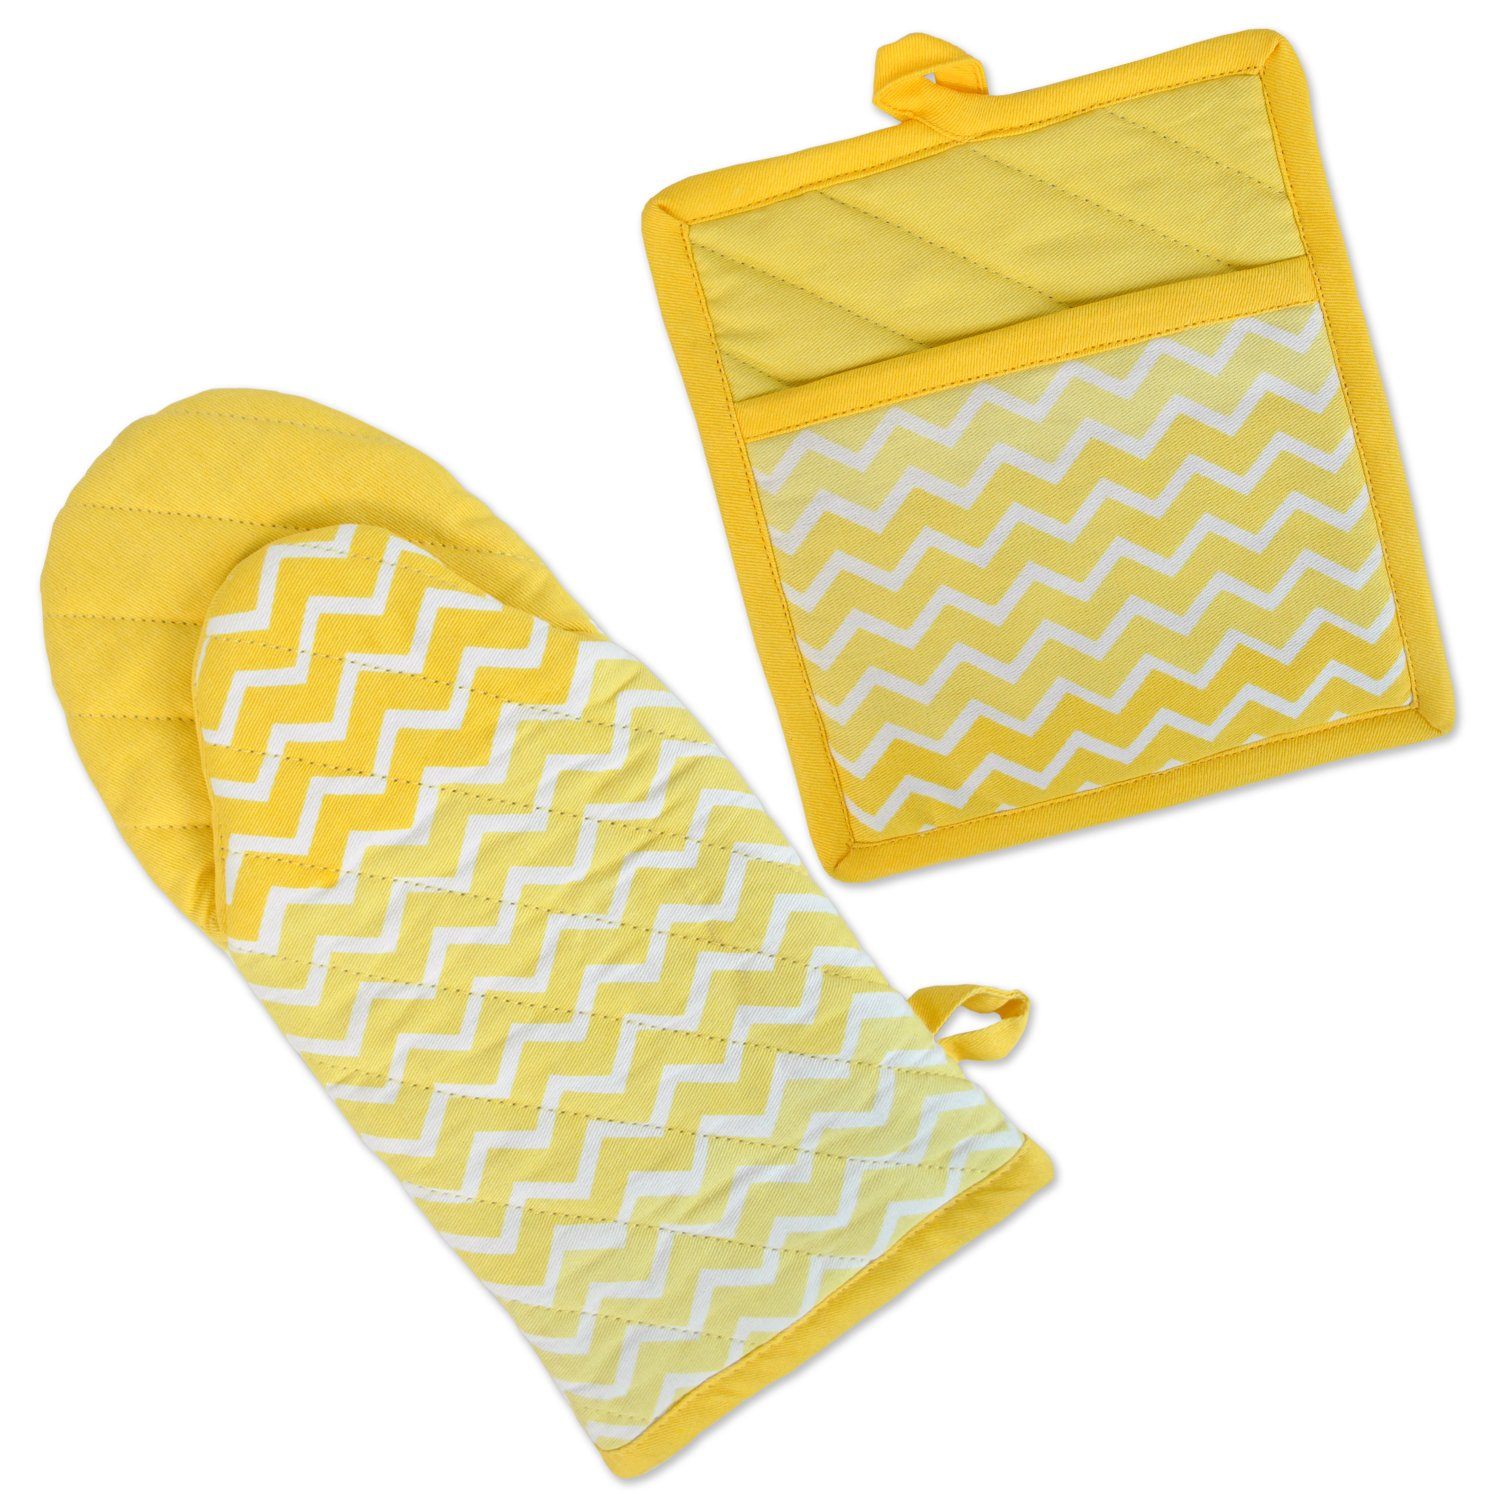 DII Chevron Washable Resistant Baking Yellow Image 1